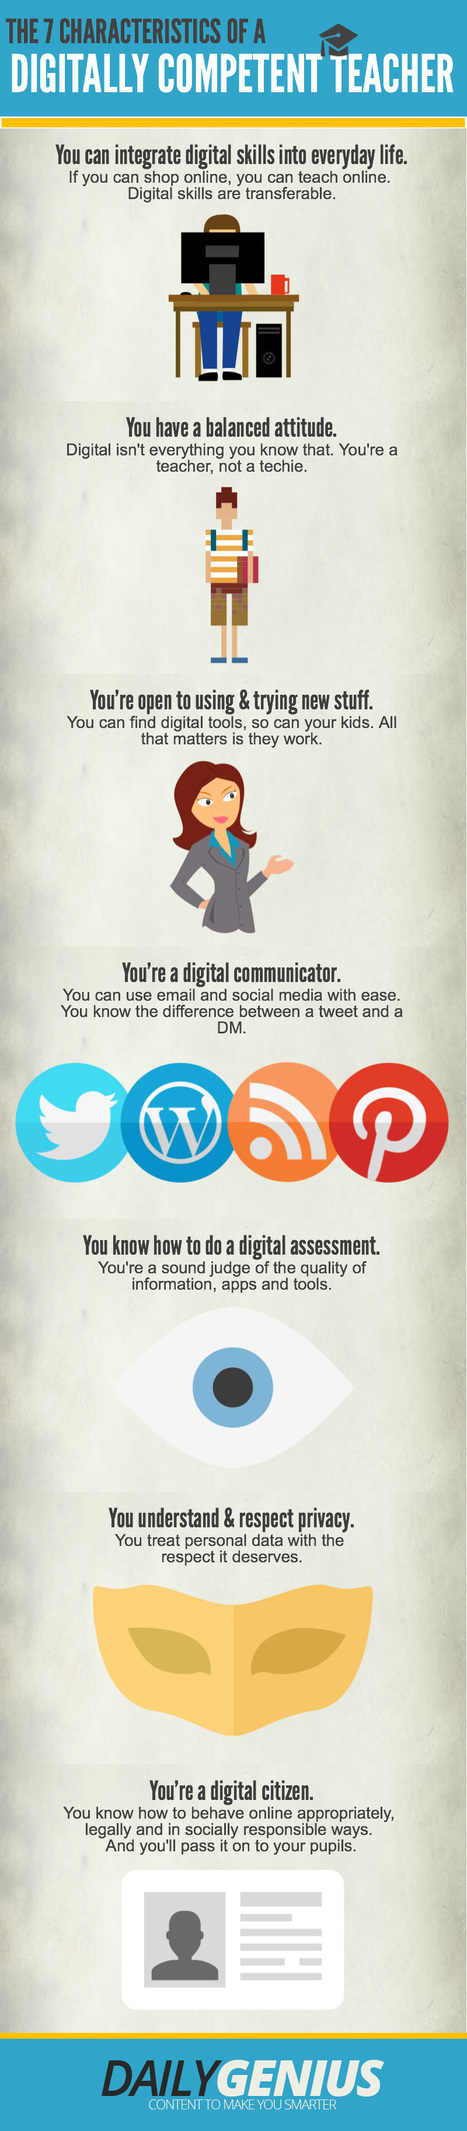 The Characteristics of a Digitally Competent Teacher Infographic | e-Learning Infographics | Jewish Education Around the World | Scoop.it